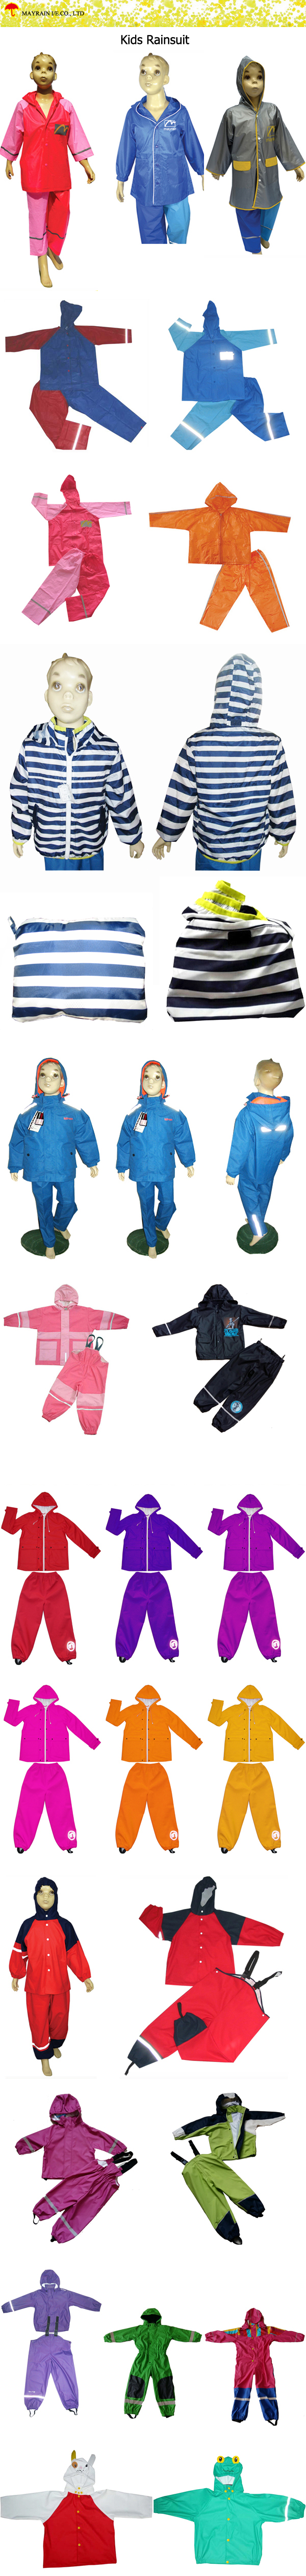 Kids Rainsuit